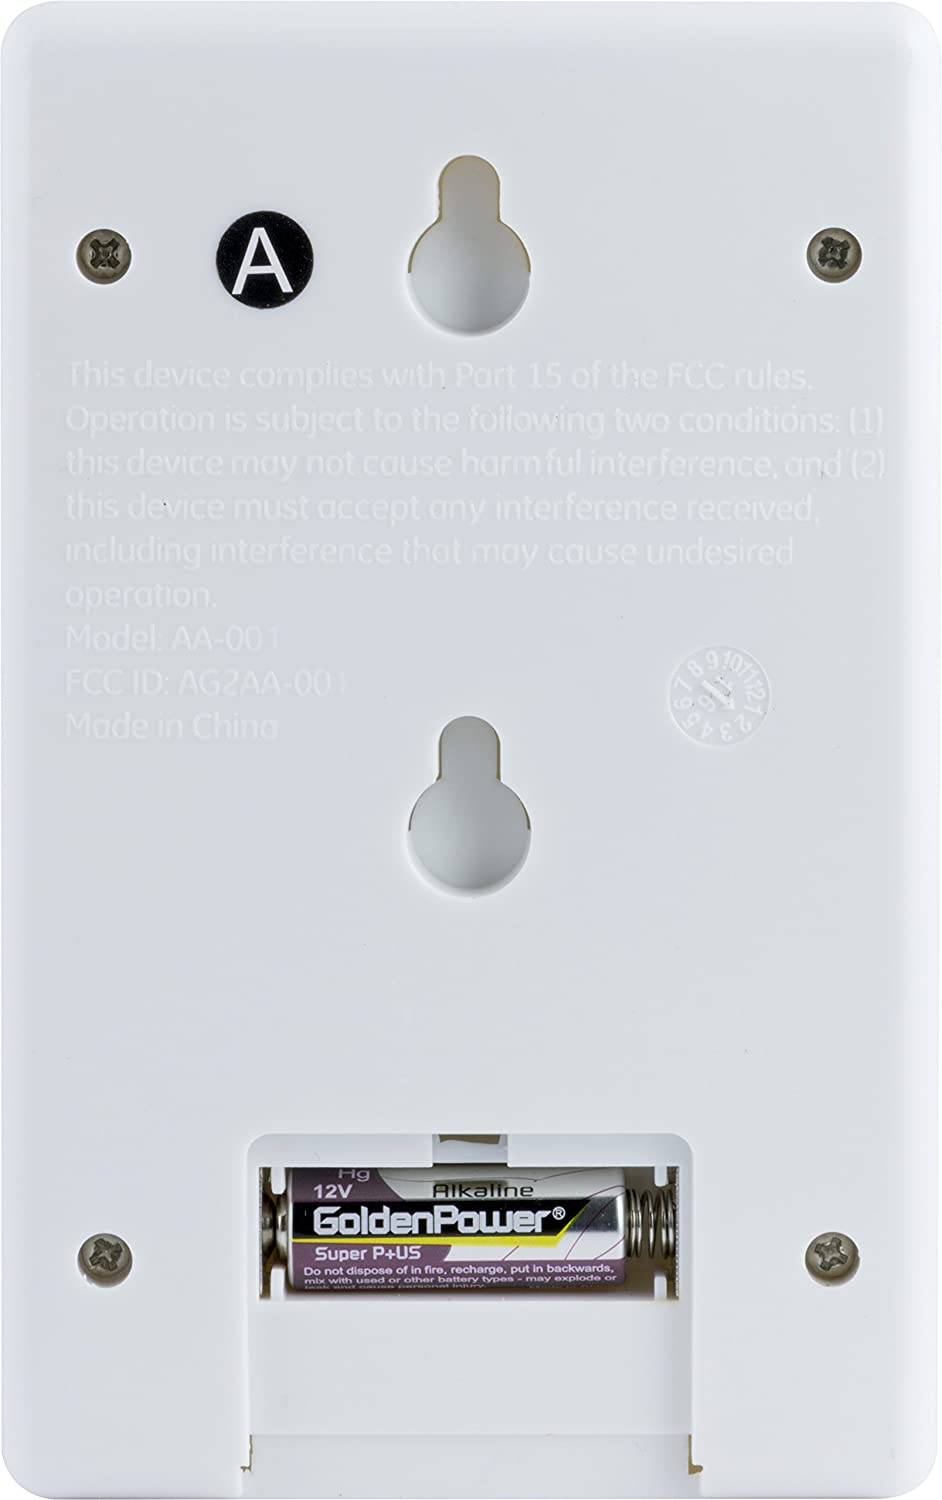 Ge 18279 Wireless Wall Switch Lighting Control Remote Operation Rewire A That Controls An Outlet To Overhead Light White